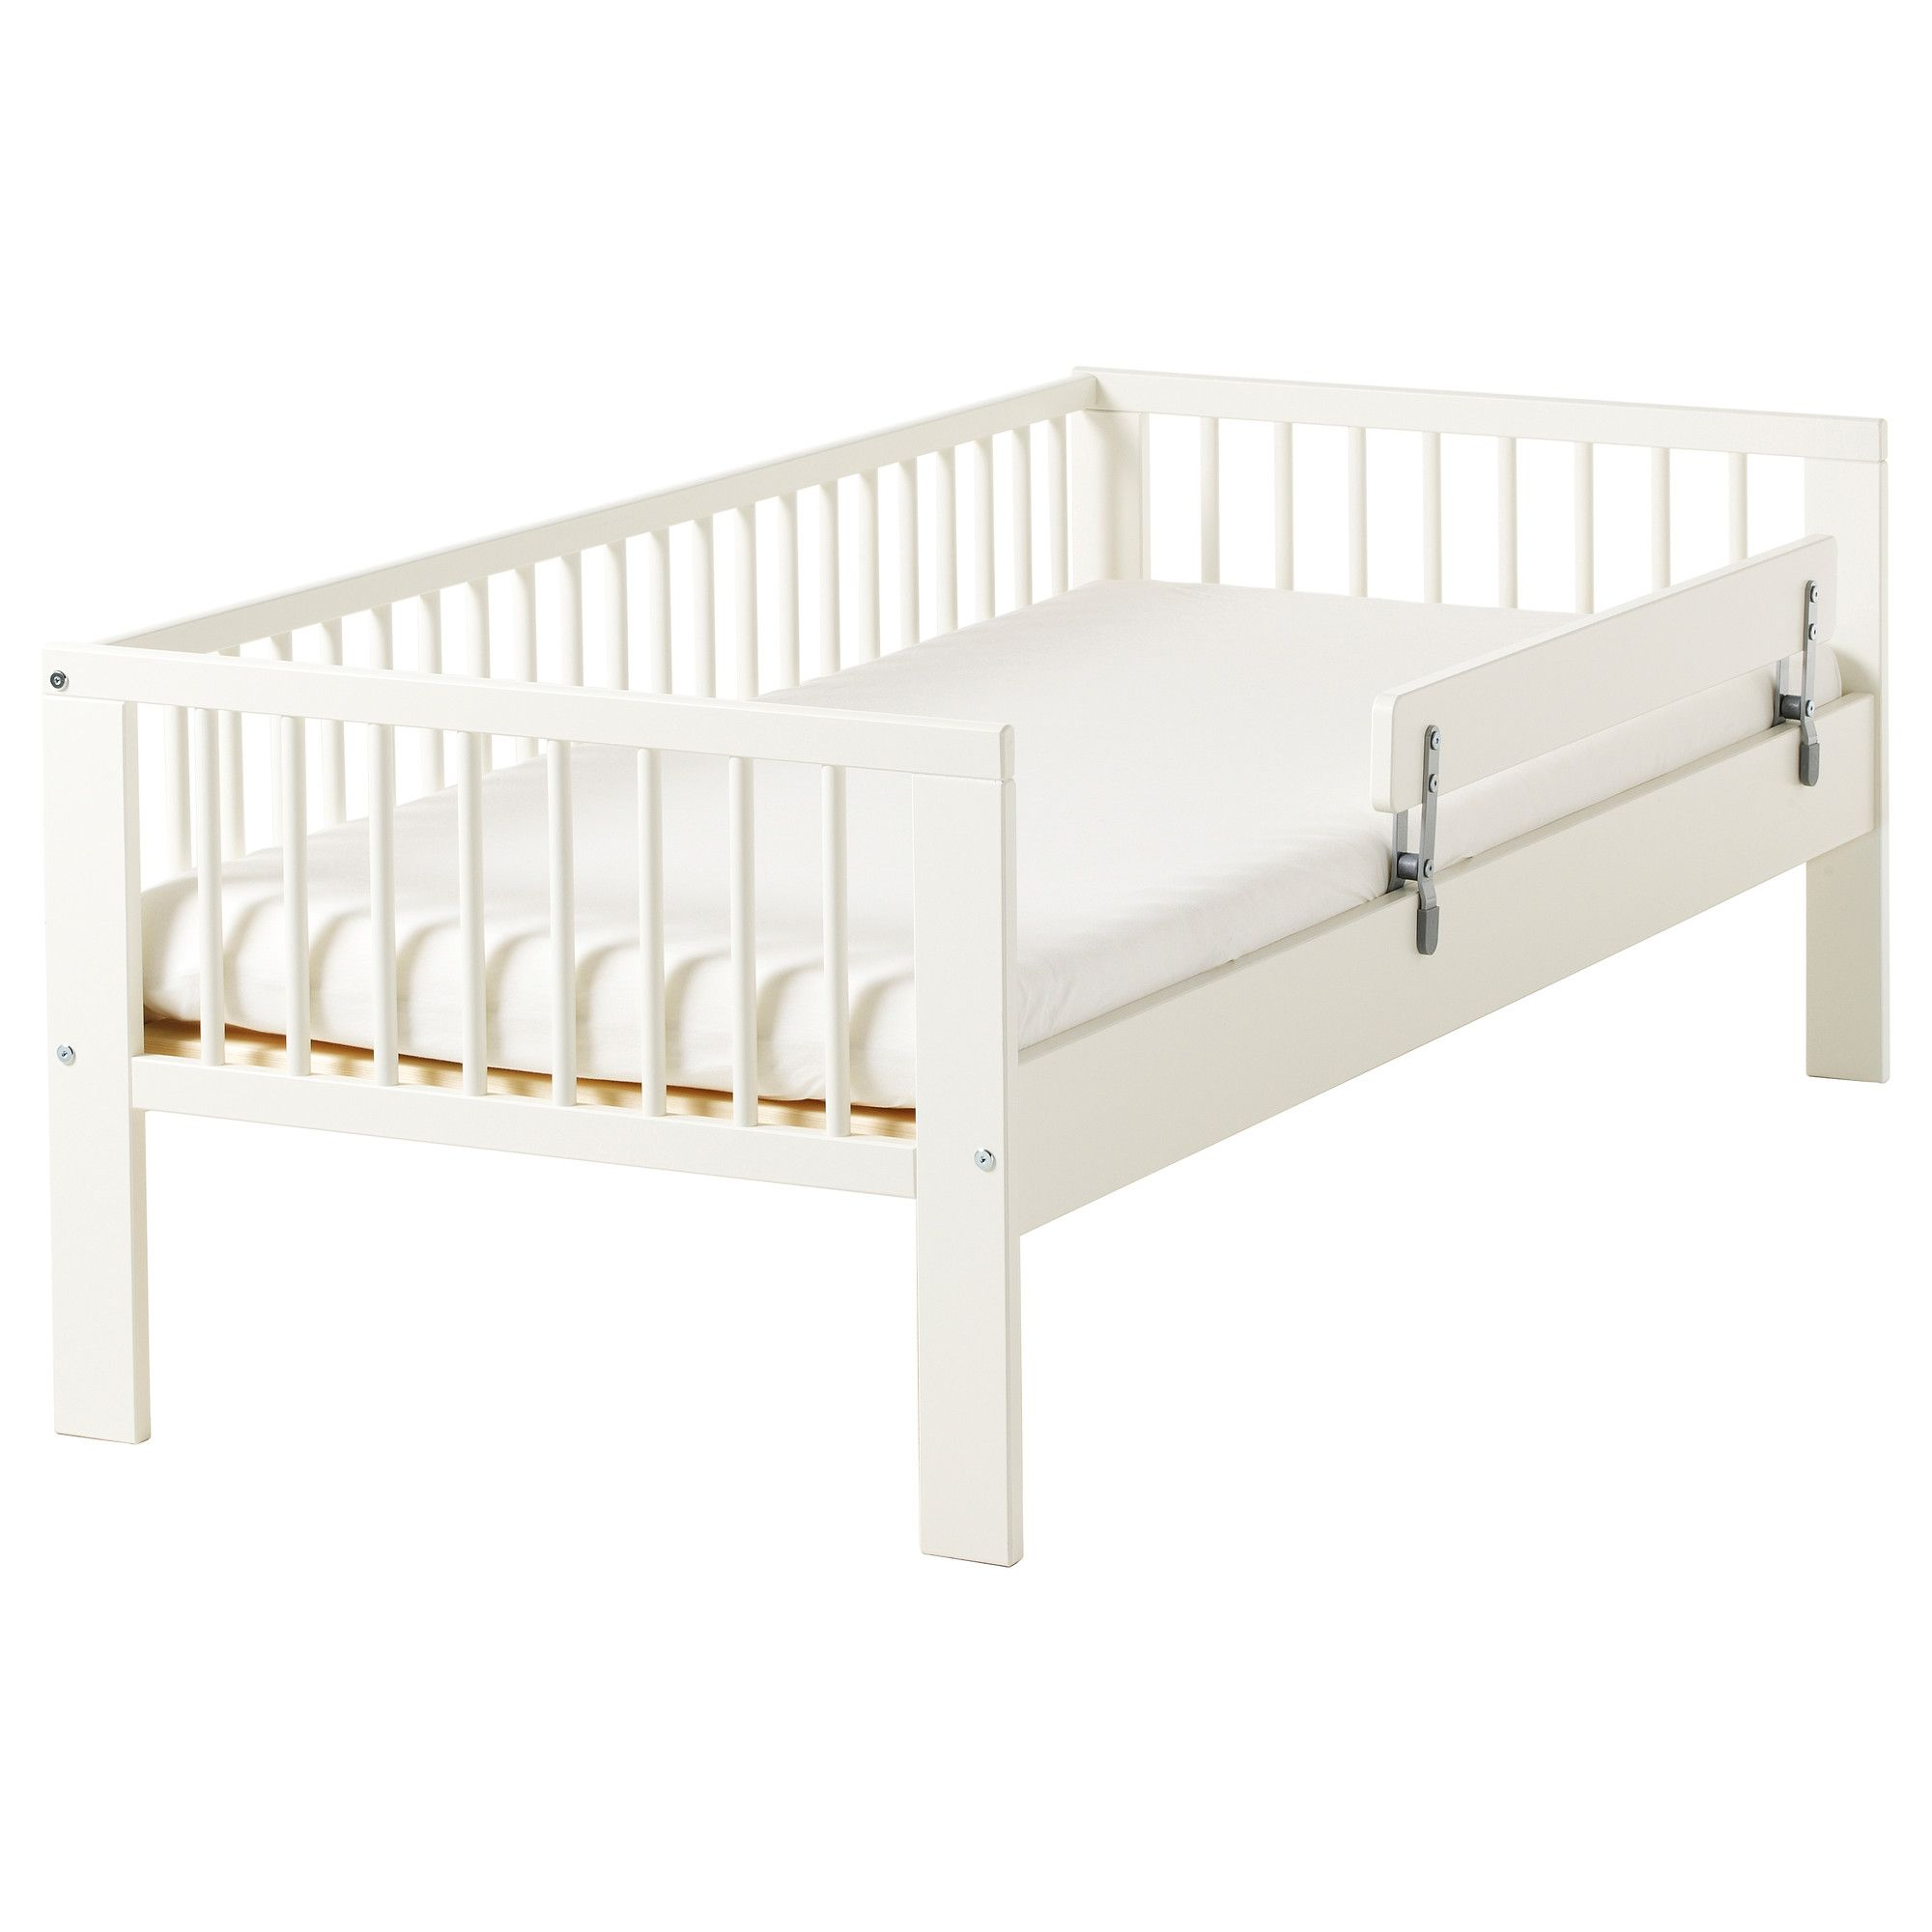 Adapt this IKEA bed by cutting the legs off and turn this in to a